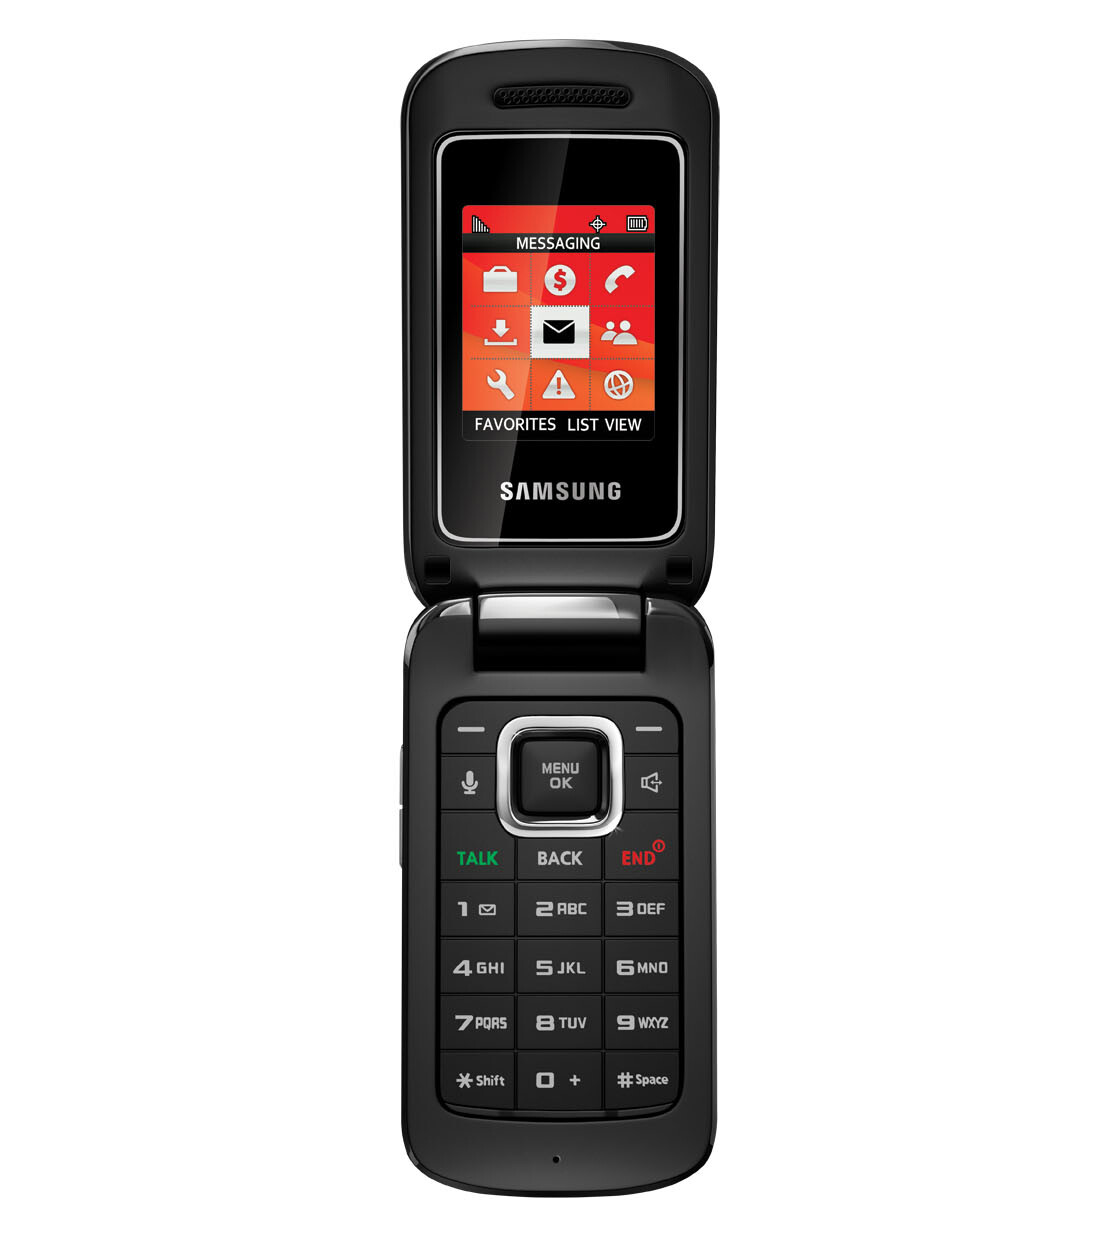 Compare and save on the latest and best mobile phone contracts, SIM Only deals, SIM Free Handsets, Upgrades & Accessories from award winning cheapwomensclothes.tk